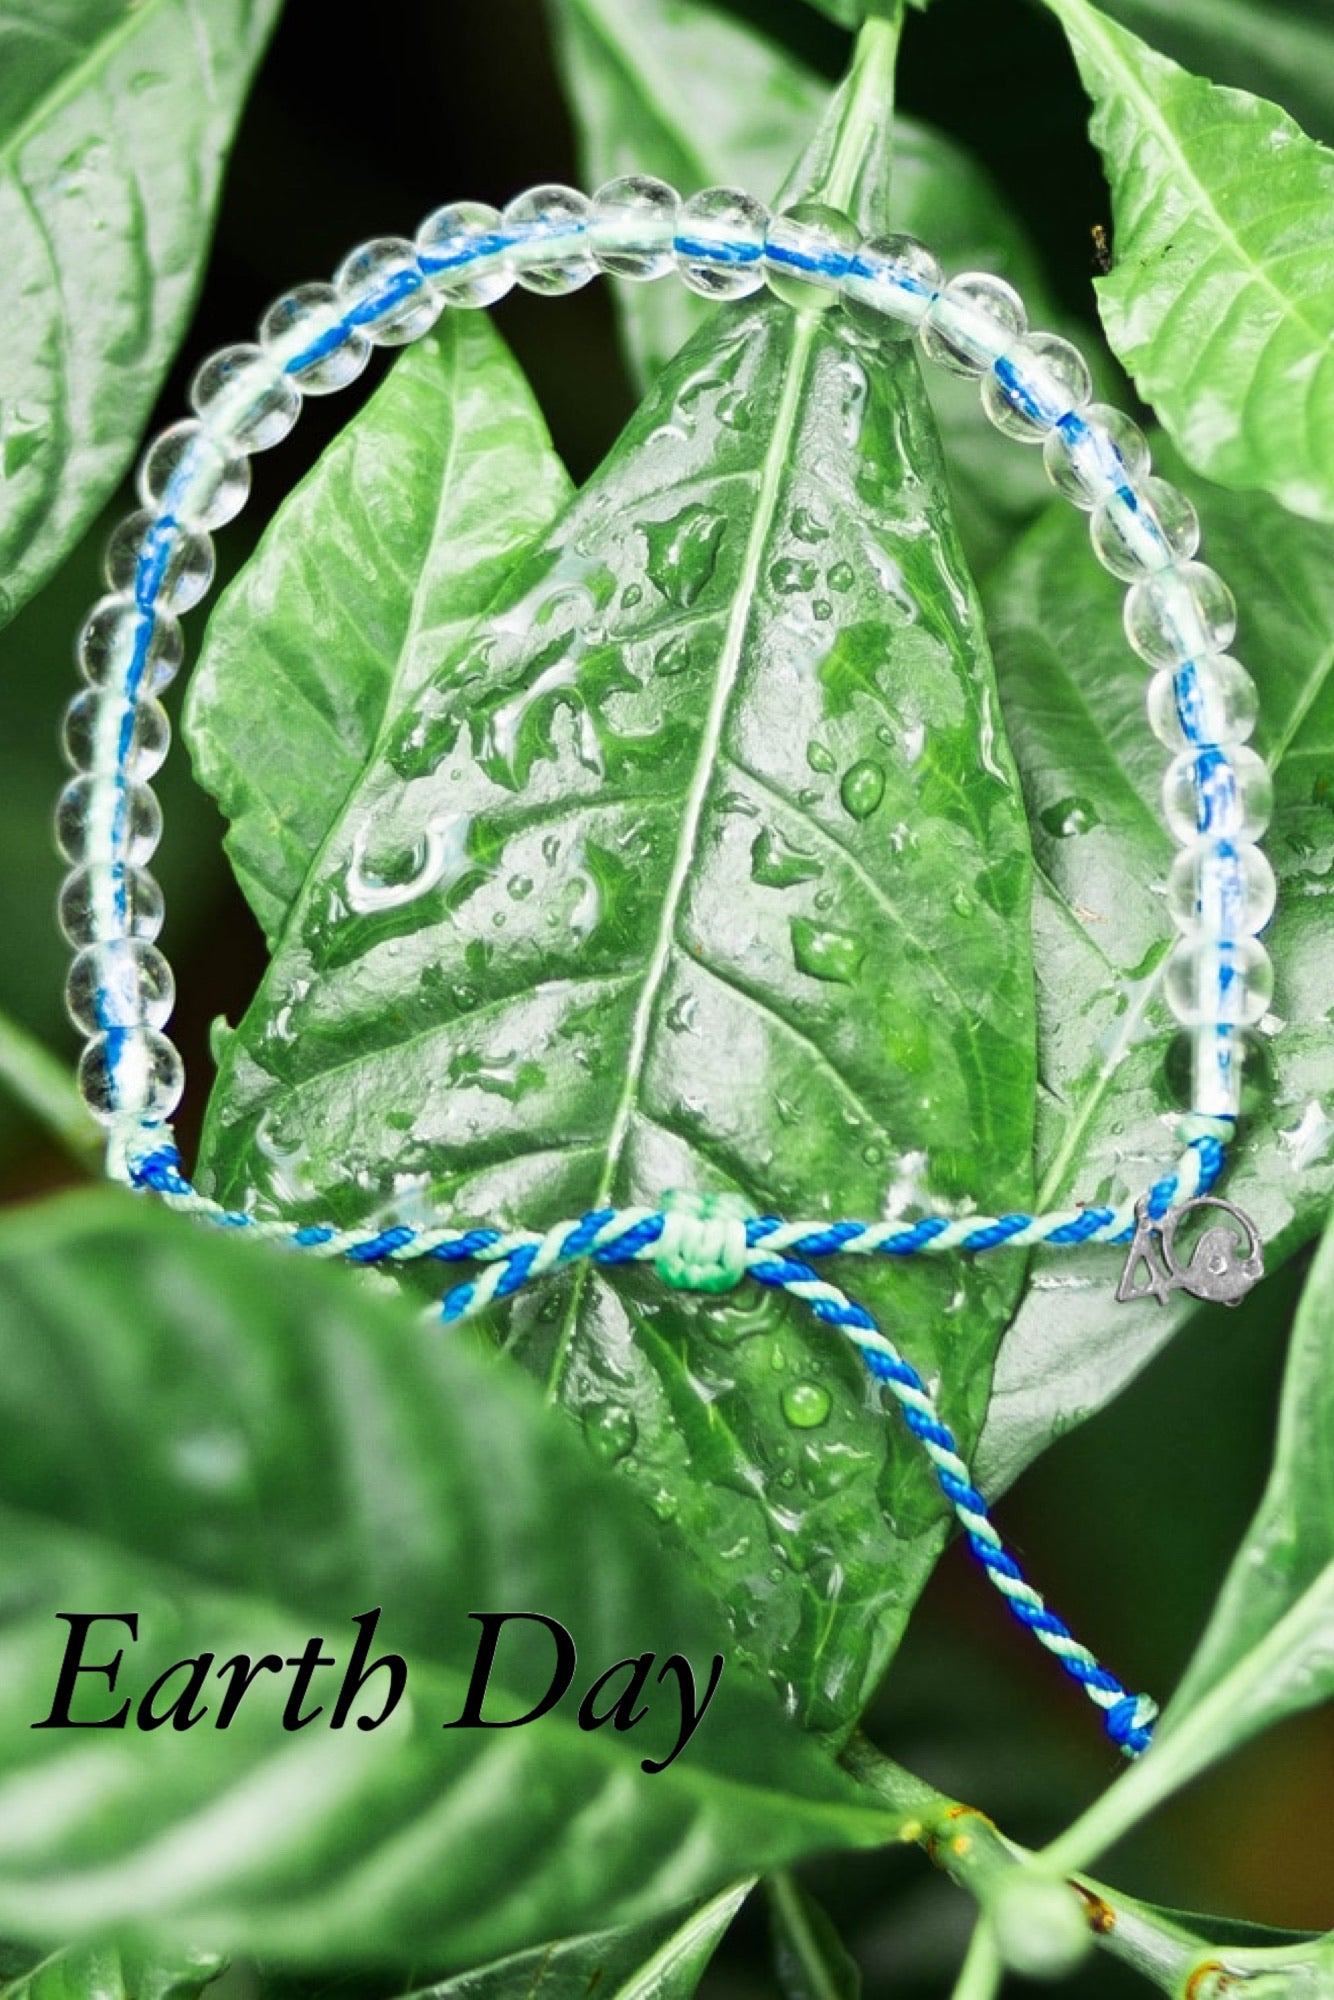 The Earth Day Bracelet by 4oceans